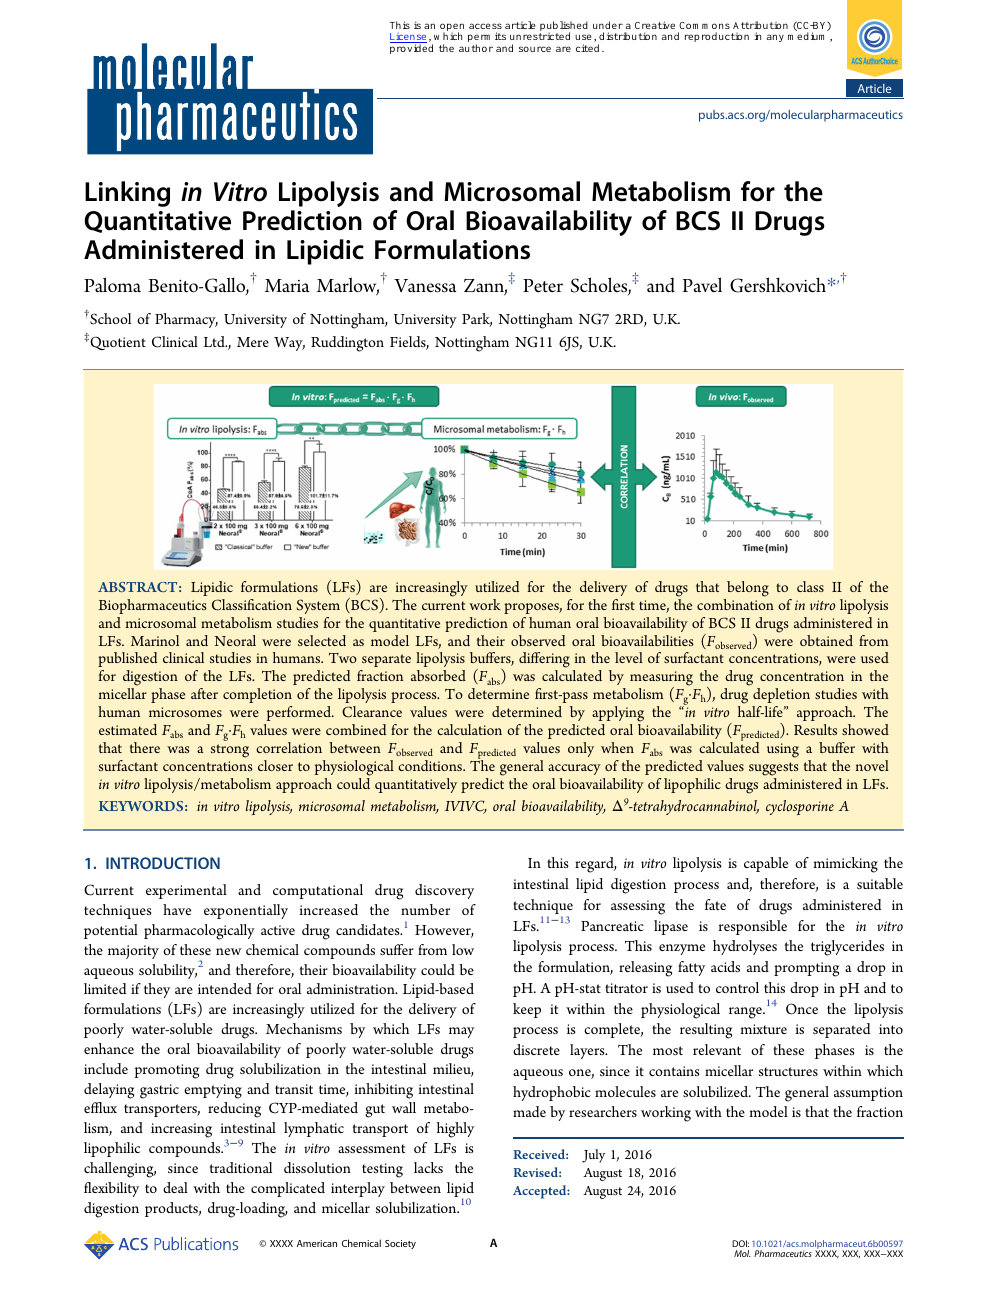 Linking In Vitro Lipolysis And Microsomal Metabolism For The Quantitative Prediction Of Oral Bioavailability Of Bcs Ii Drugs Administered In Lipidic Formulations Topic Of Research Paper In Chemical Sciences Download Scholarly